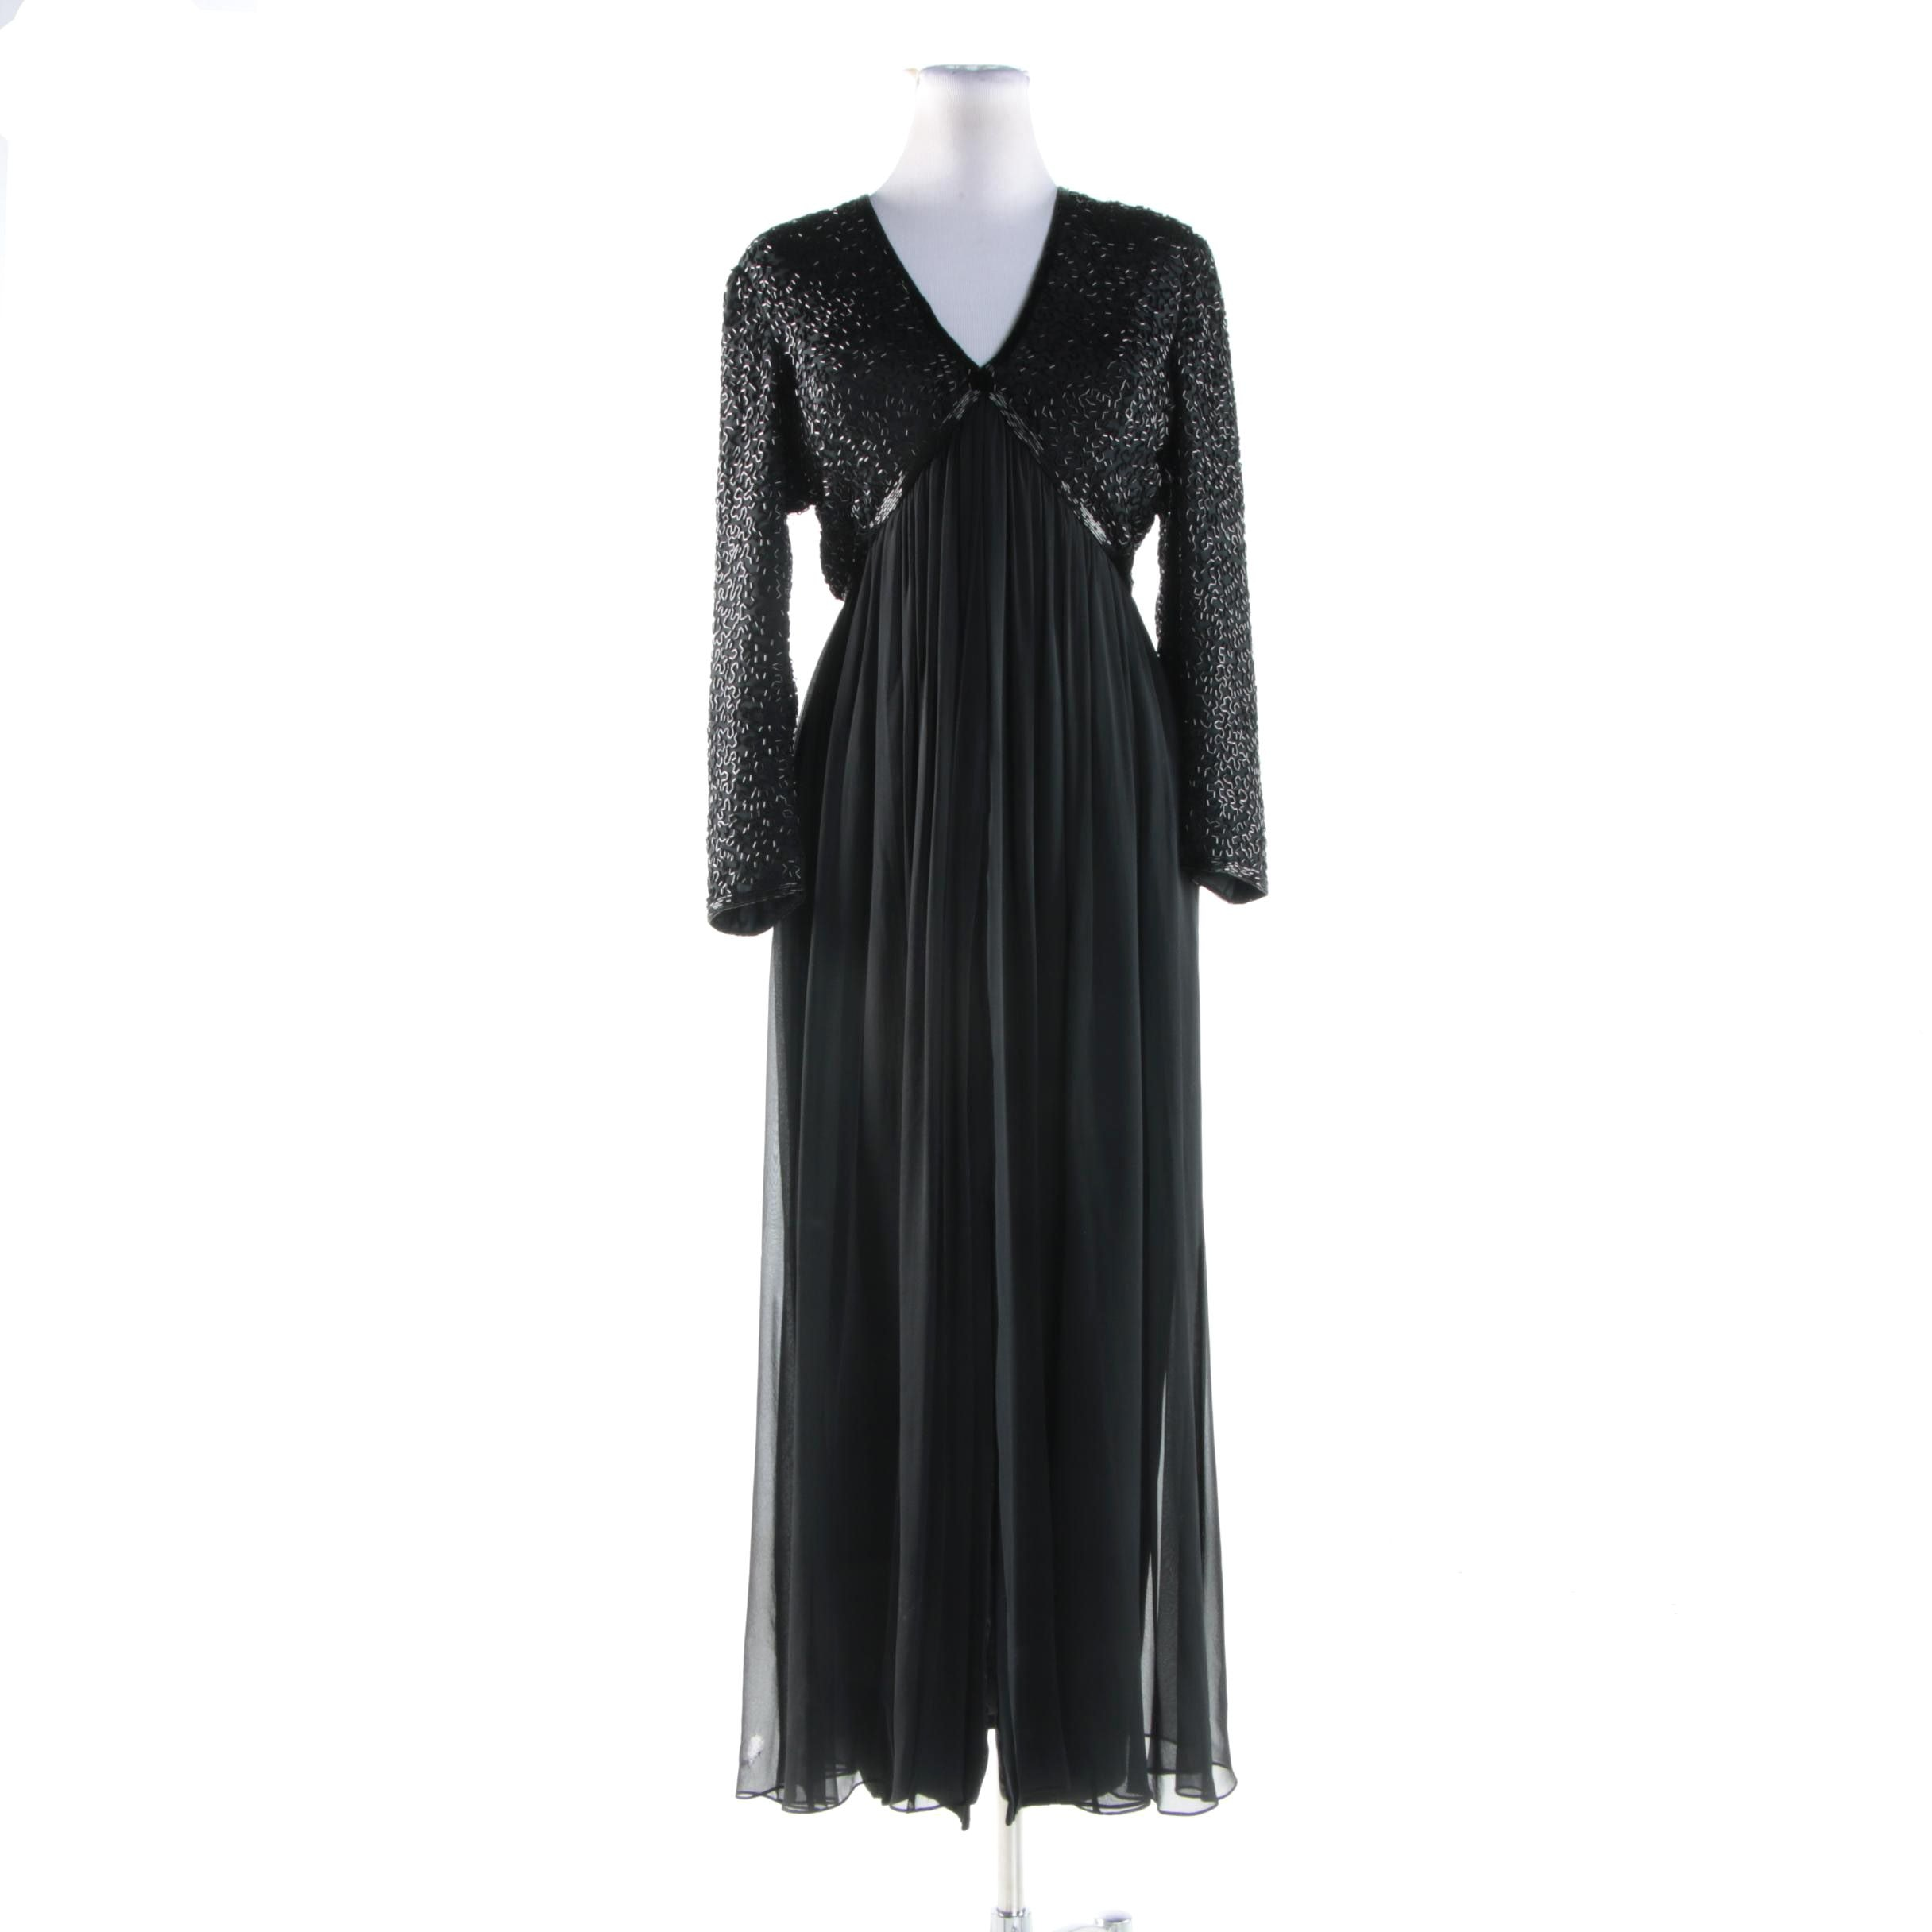 Stephen Yearick Black Maxi Evening Dress with Beaded Bodice and Chiffon Skirt